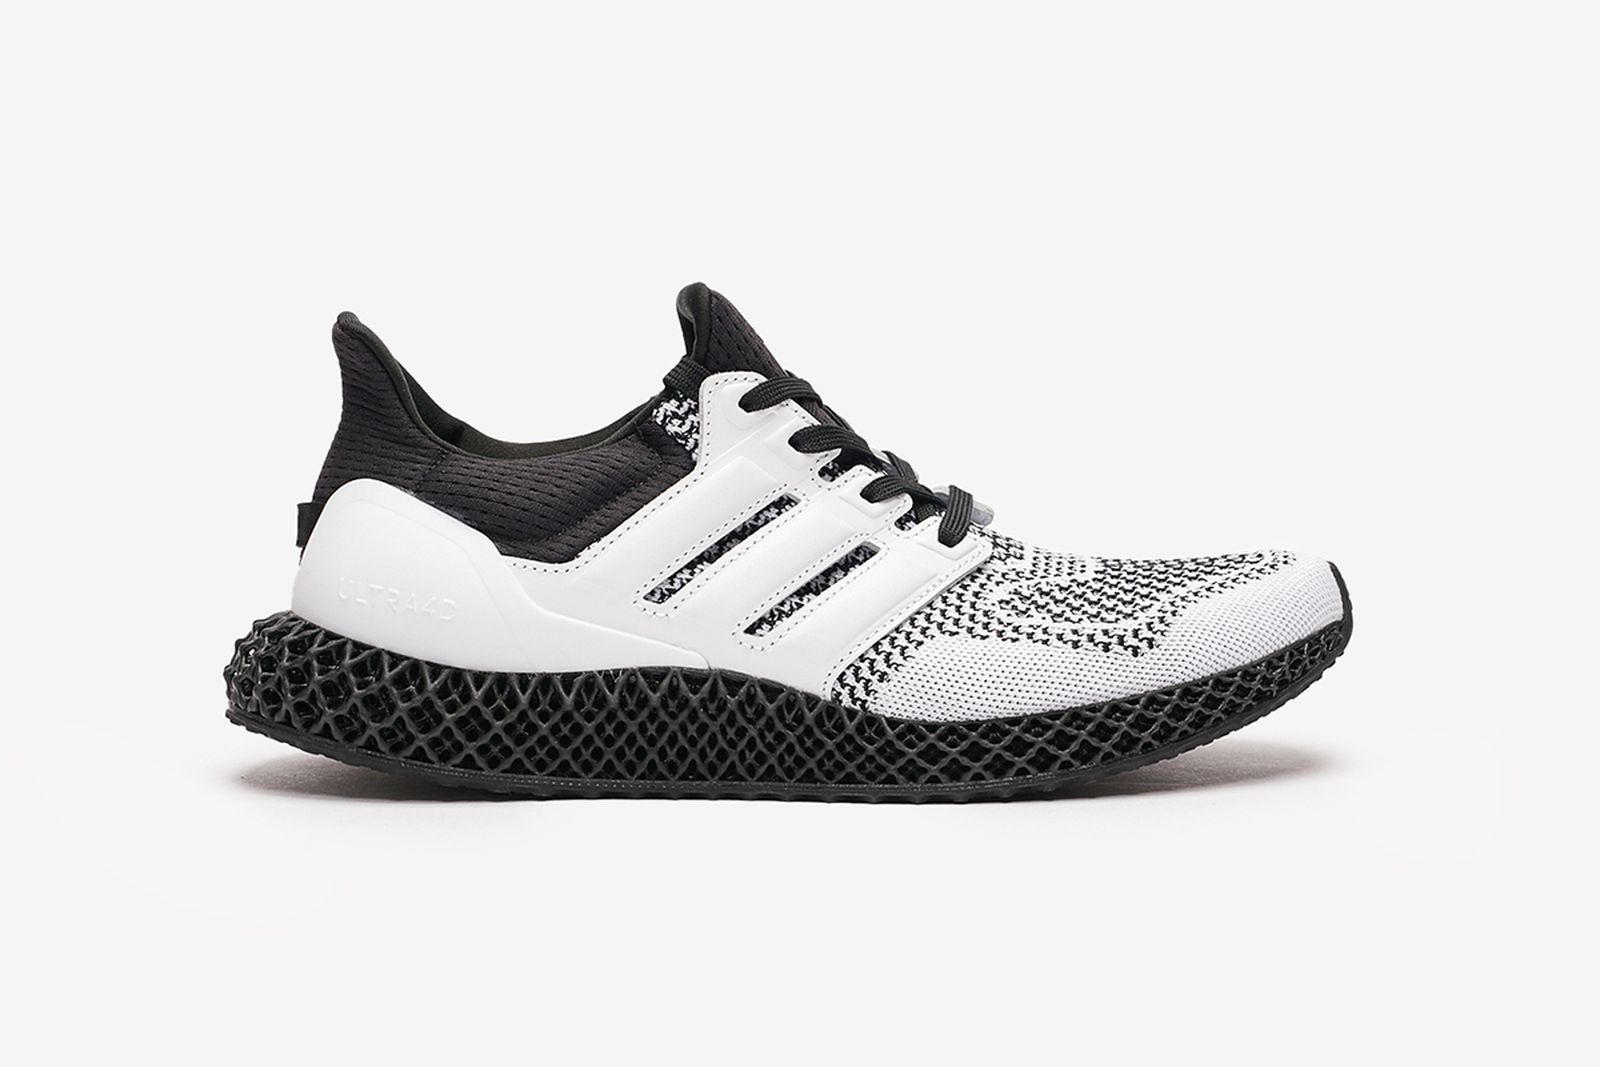 sns-adidas-ultra-4d-tee-time-release-date-price-1-152